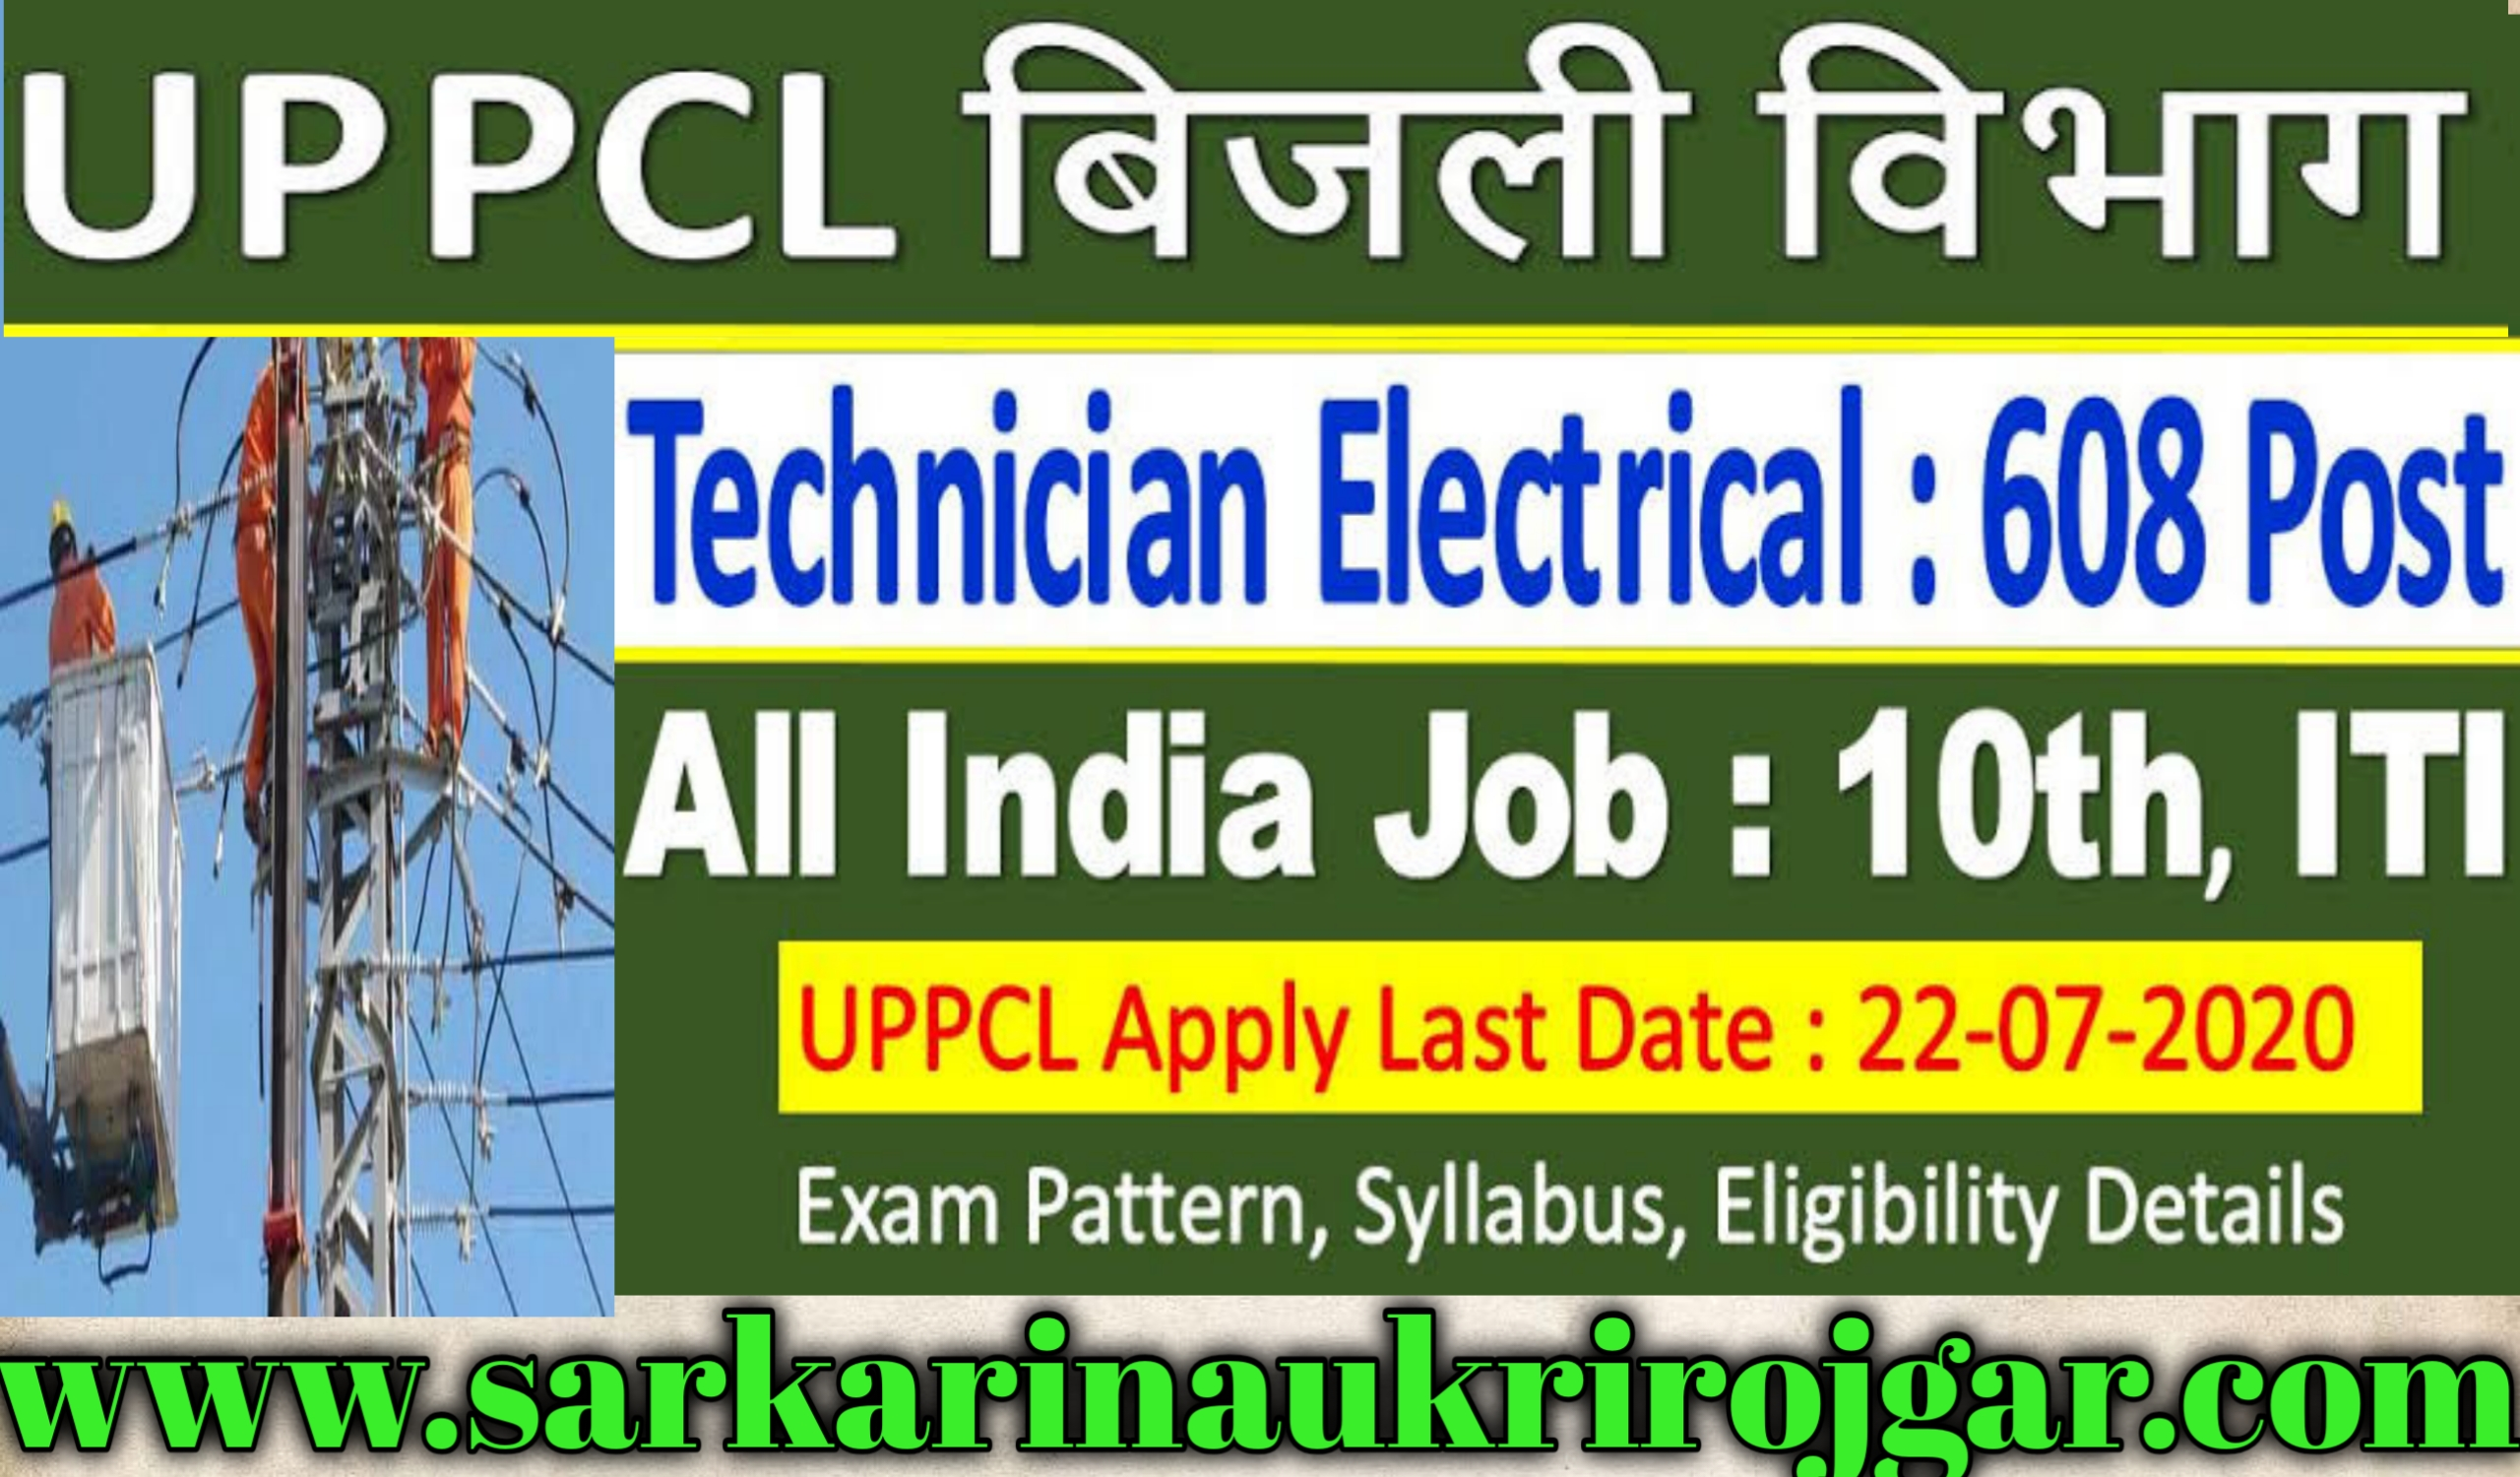 UPPCL Technician Electrical Online Form 2020